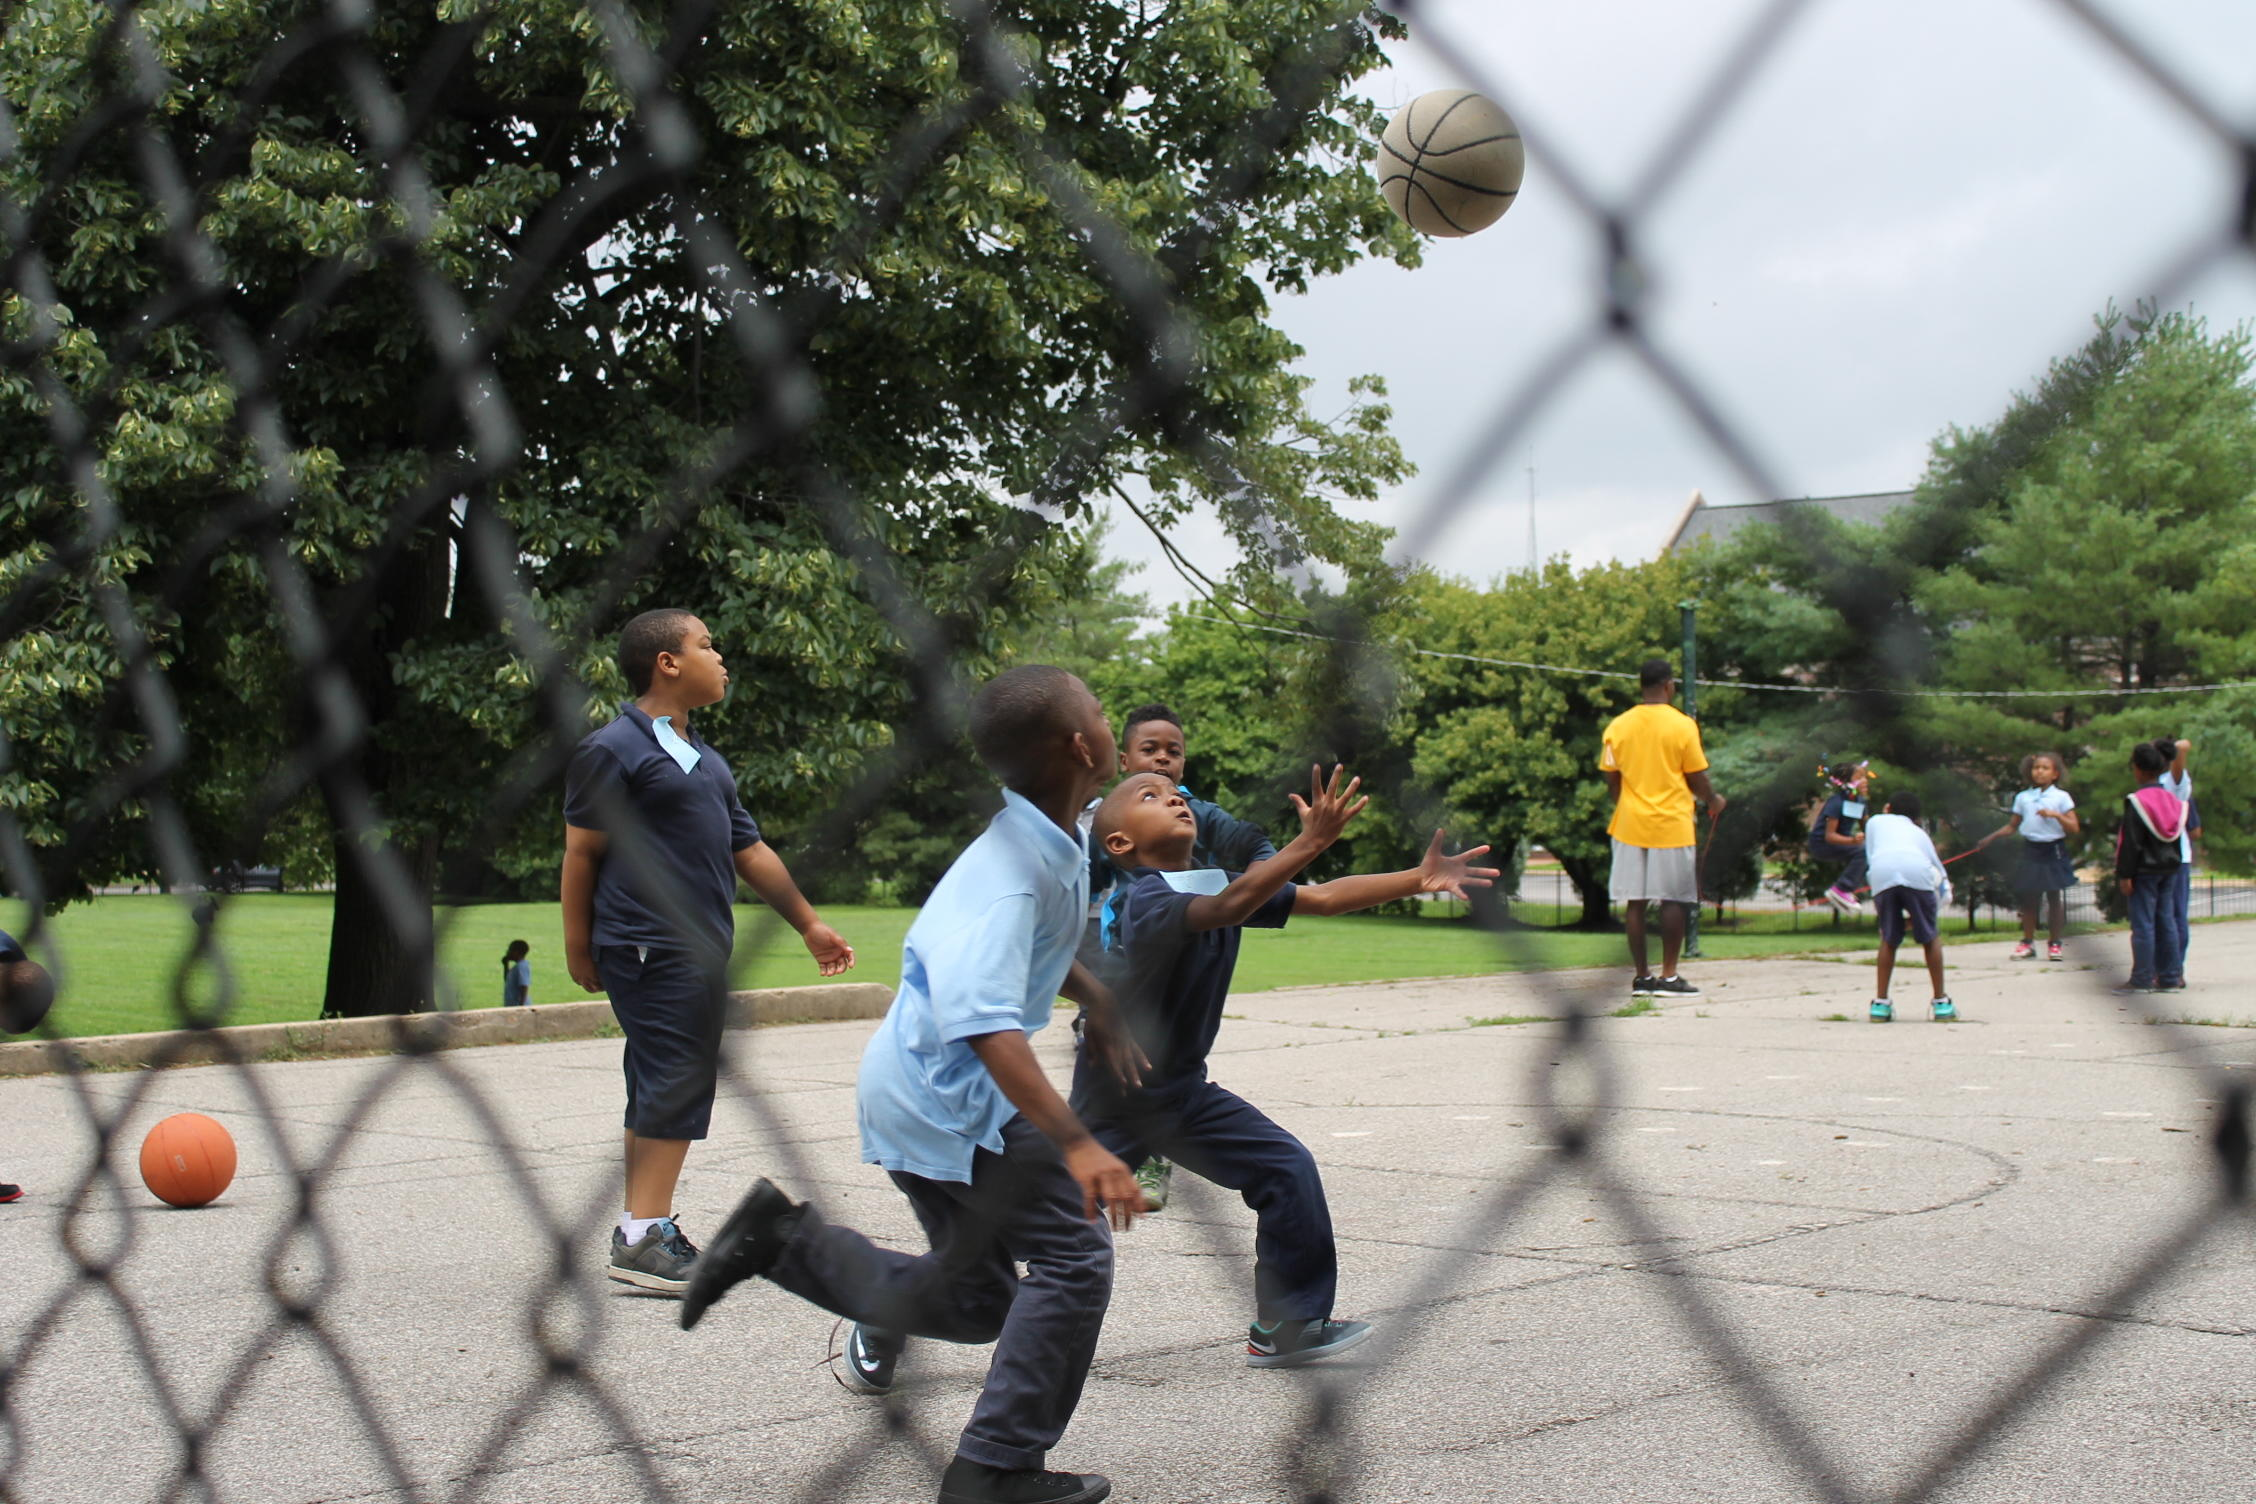 Recess at North Side Community School includes plenty of basketball. SUSANNAH LOHR | ST. LOUIS PUBLIC RADIO